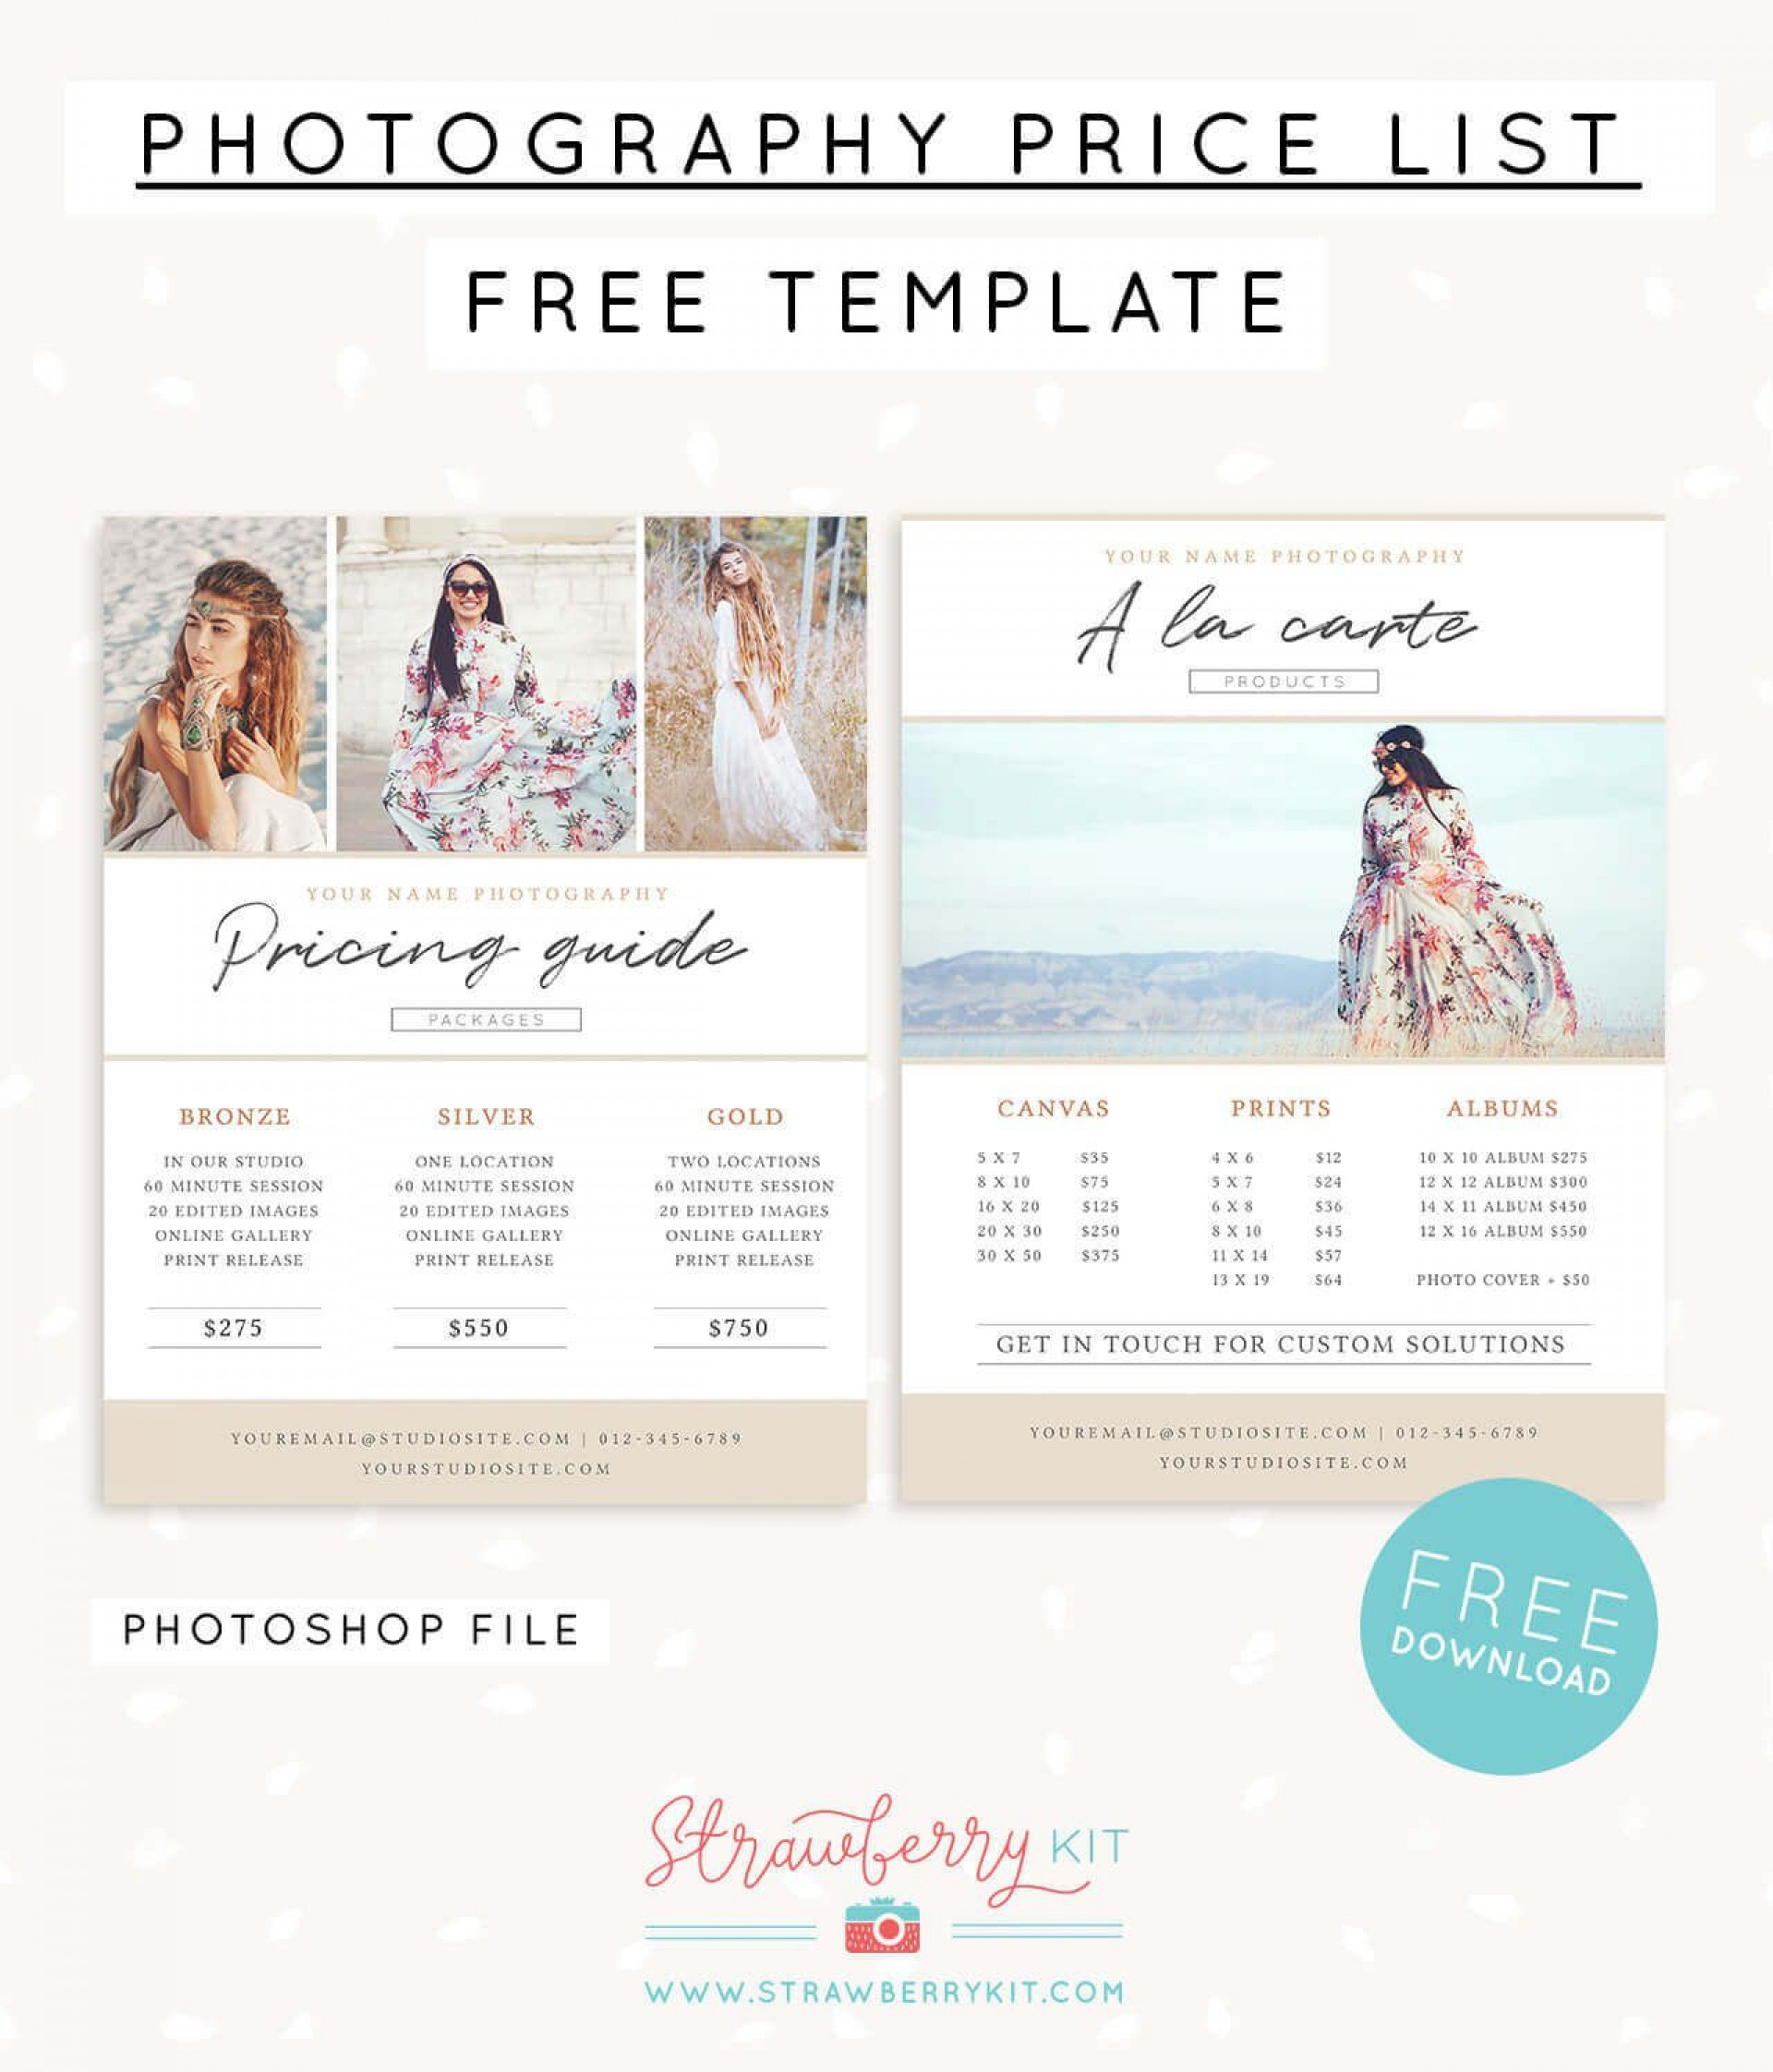 006 Unusual Free Photography Package Template Sample  Pricing1920